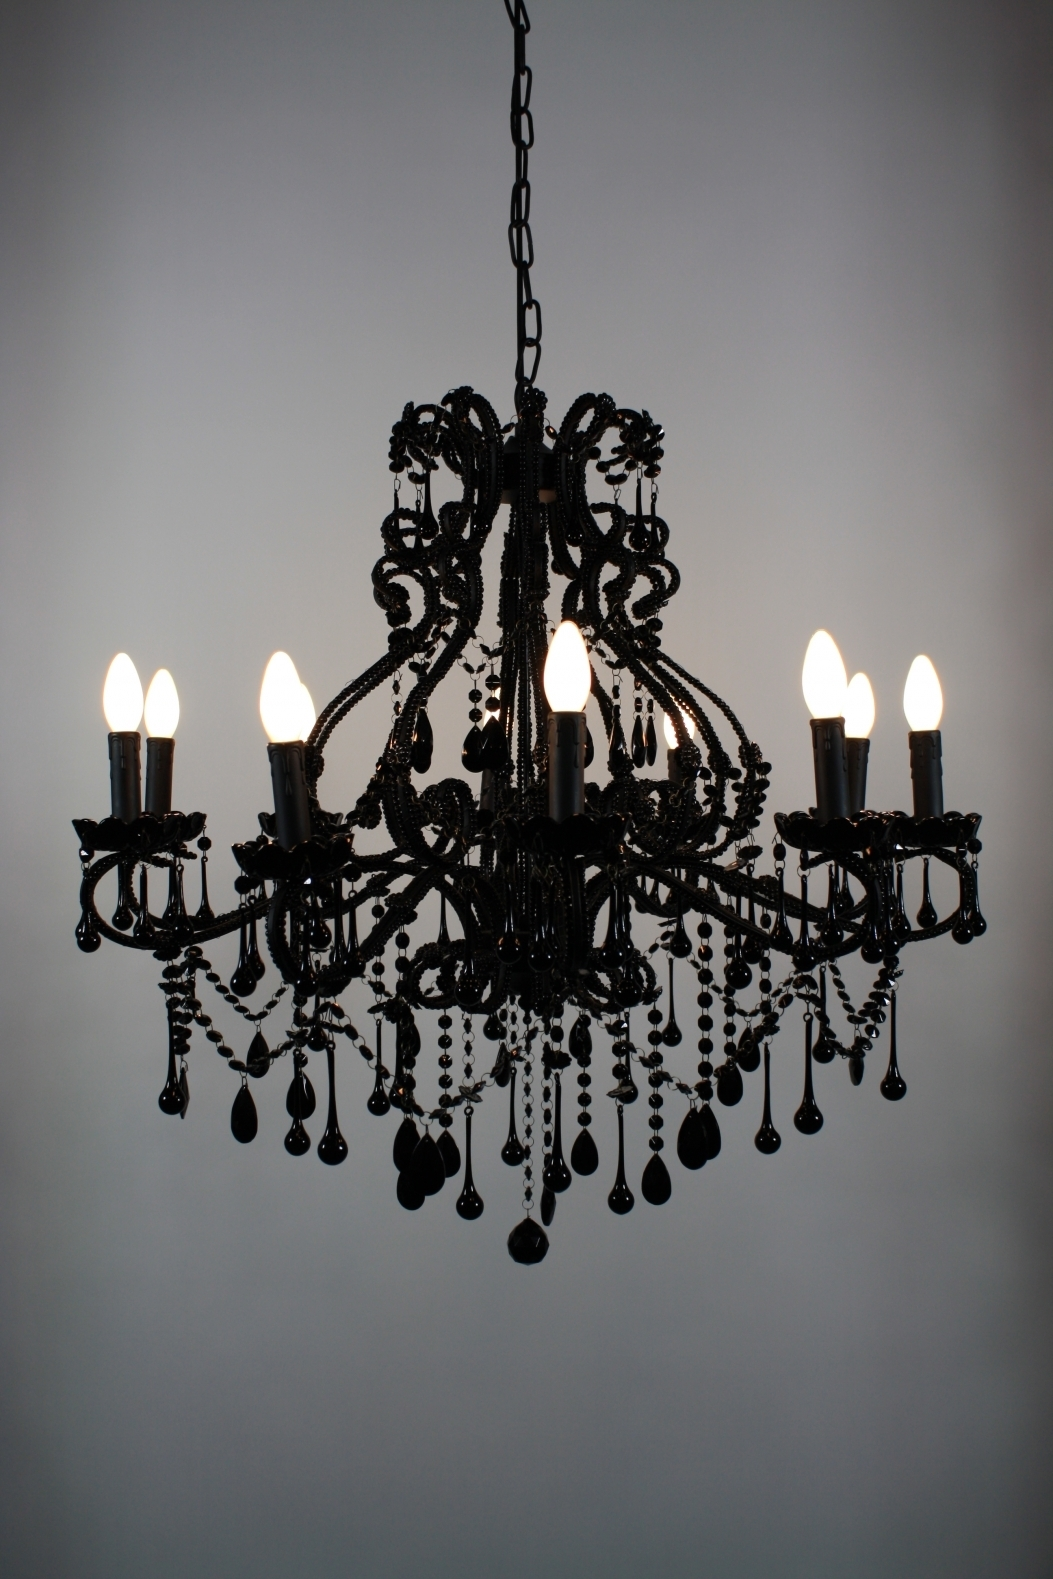 Home Design Kathy Ireland Chandelier Venetian Mirrors Wholesale For Venetian Mirrors Wholesale (Image 6 of 15)